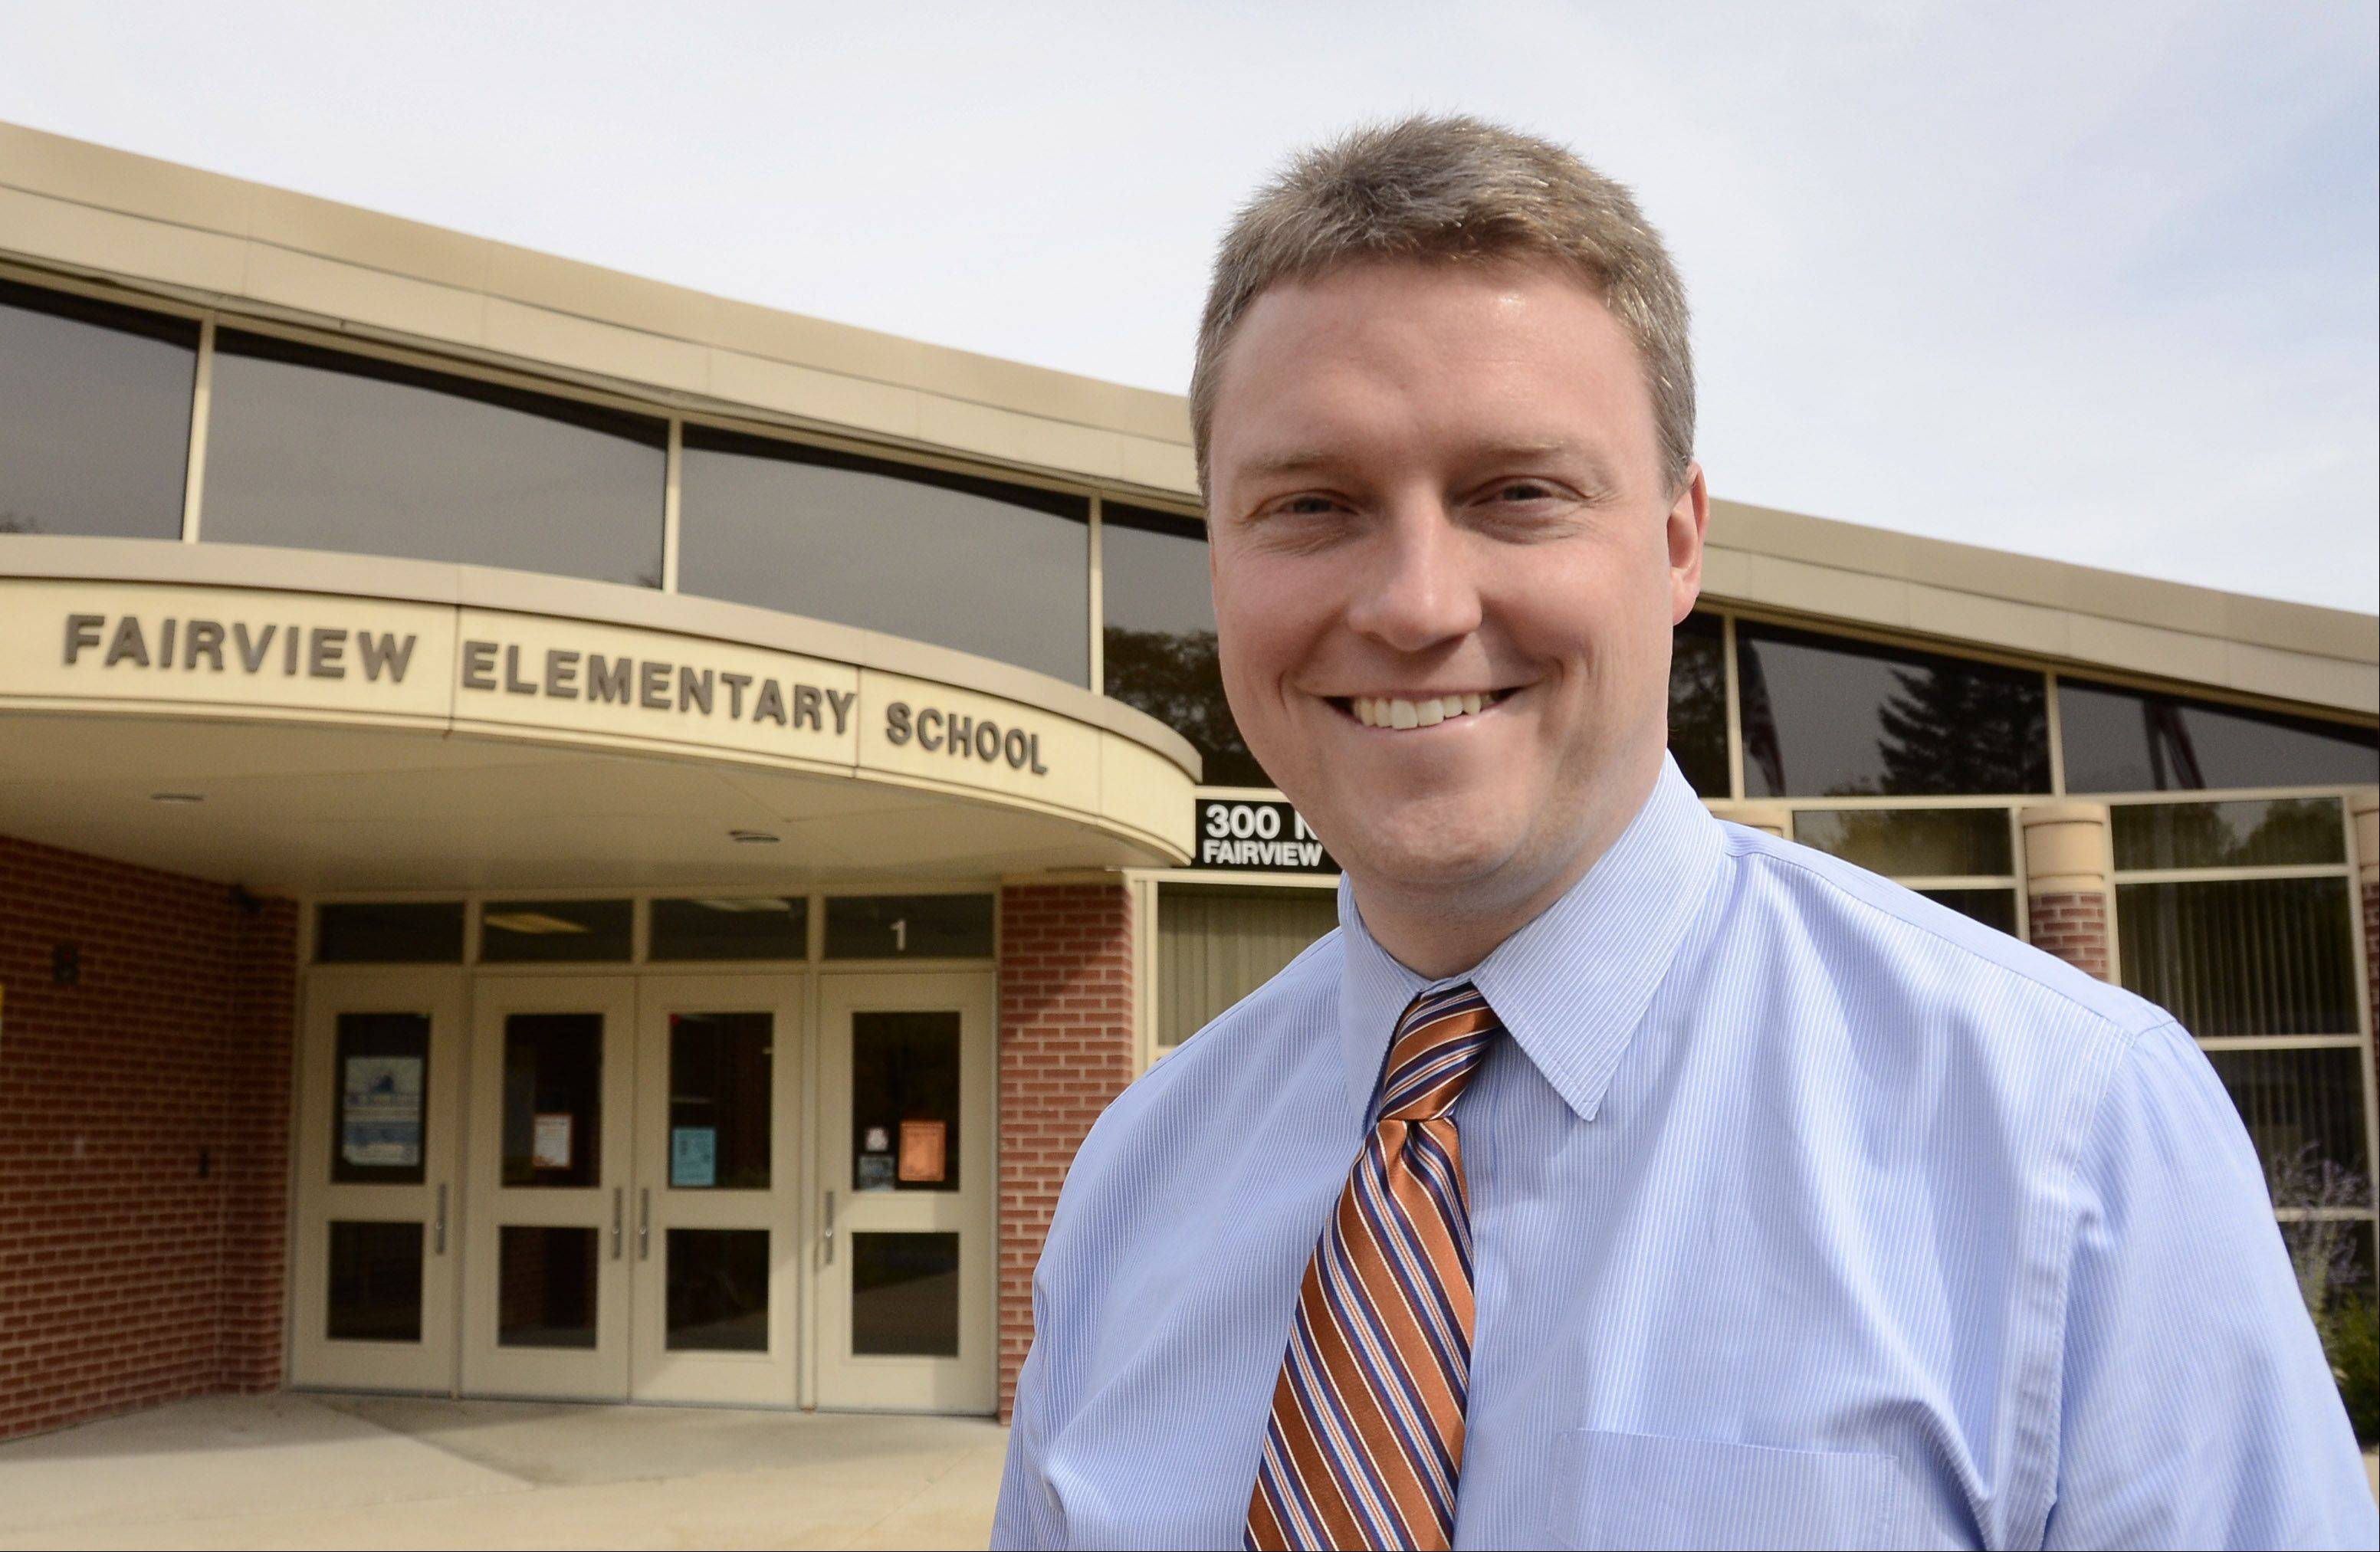 Dan Ophus is the new principal at Fairview Elementary School in Mount Prospect.